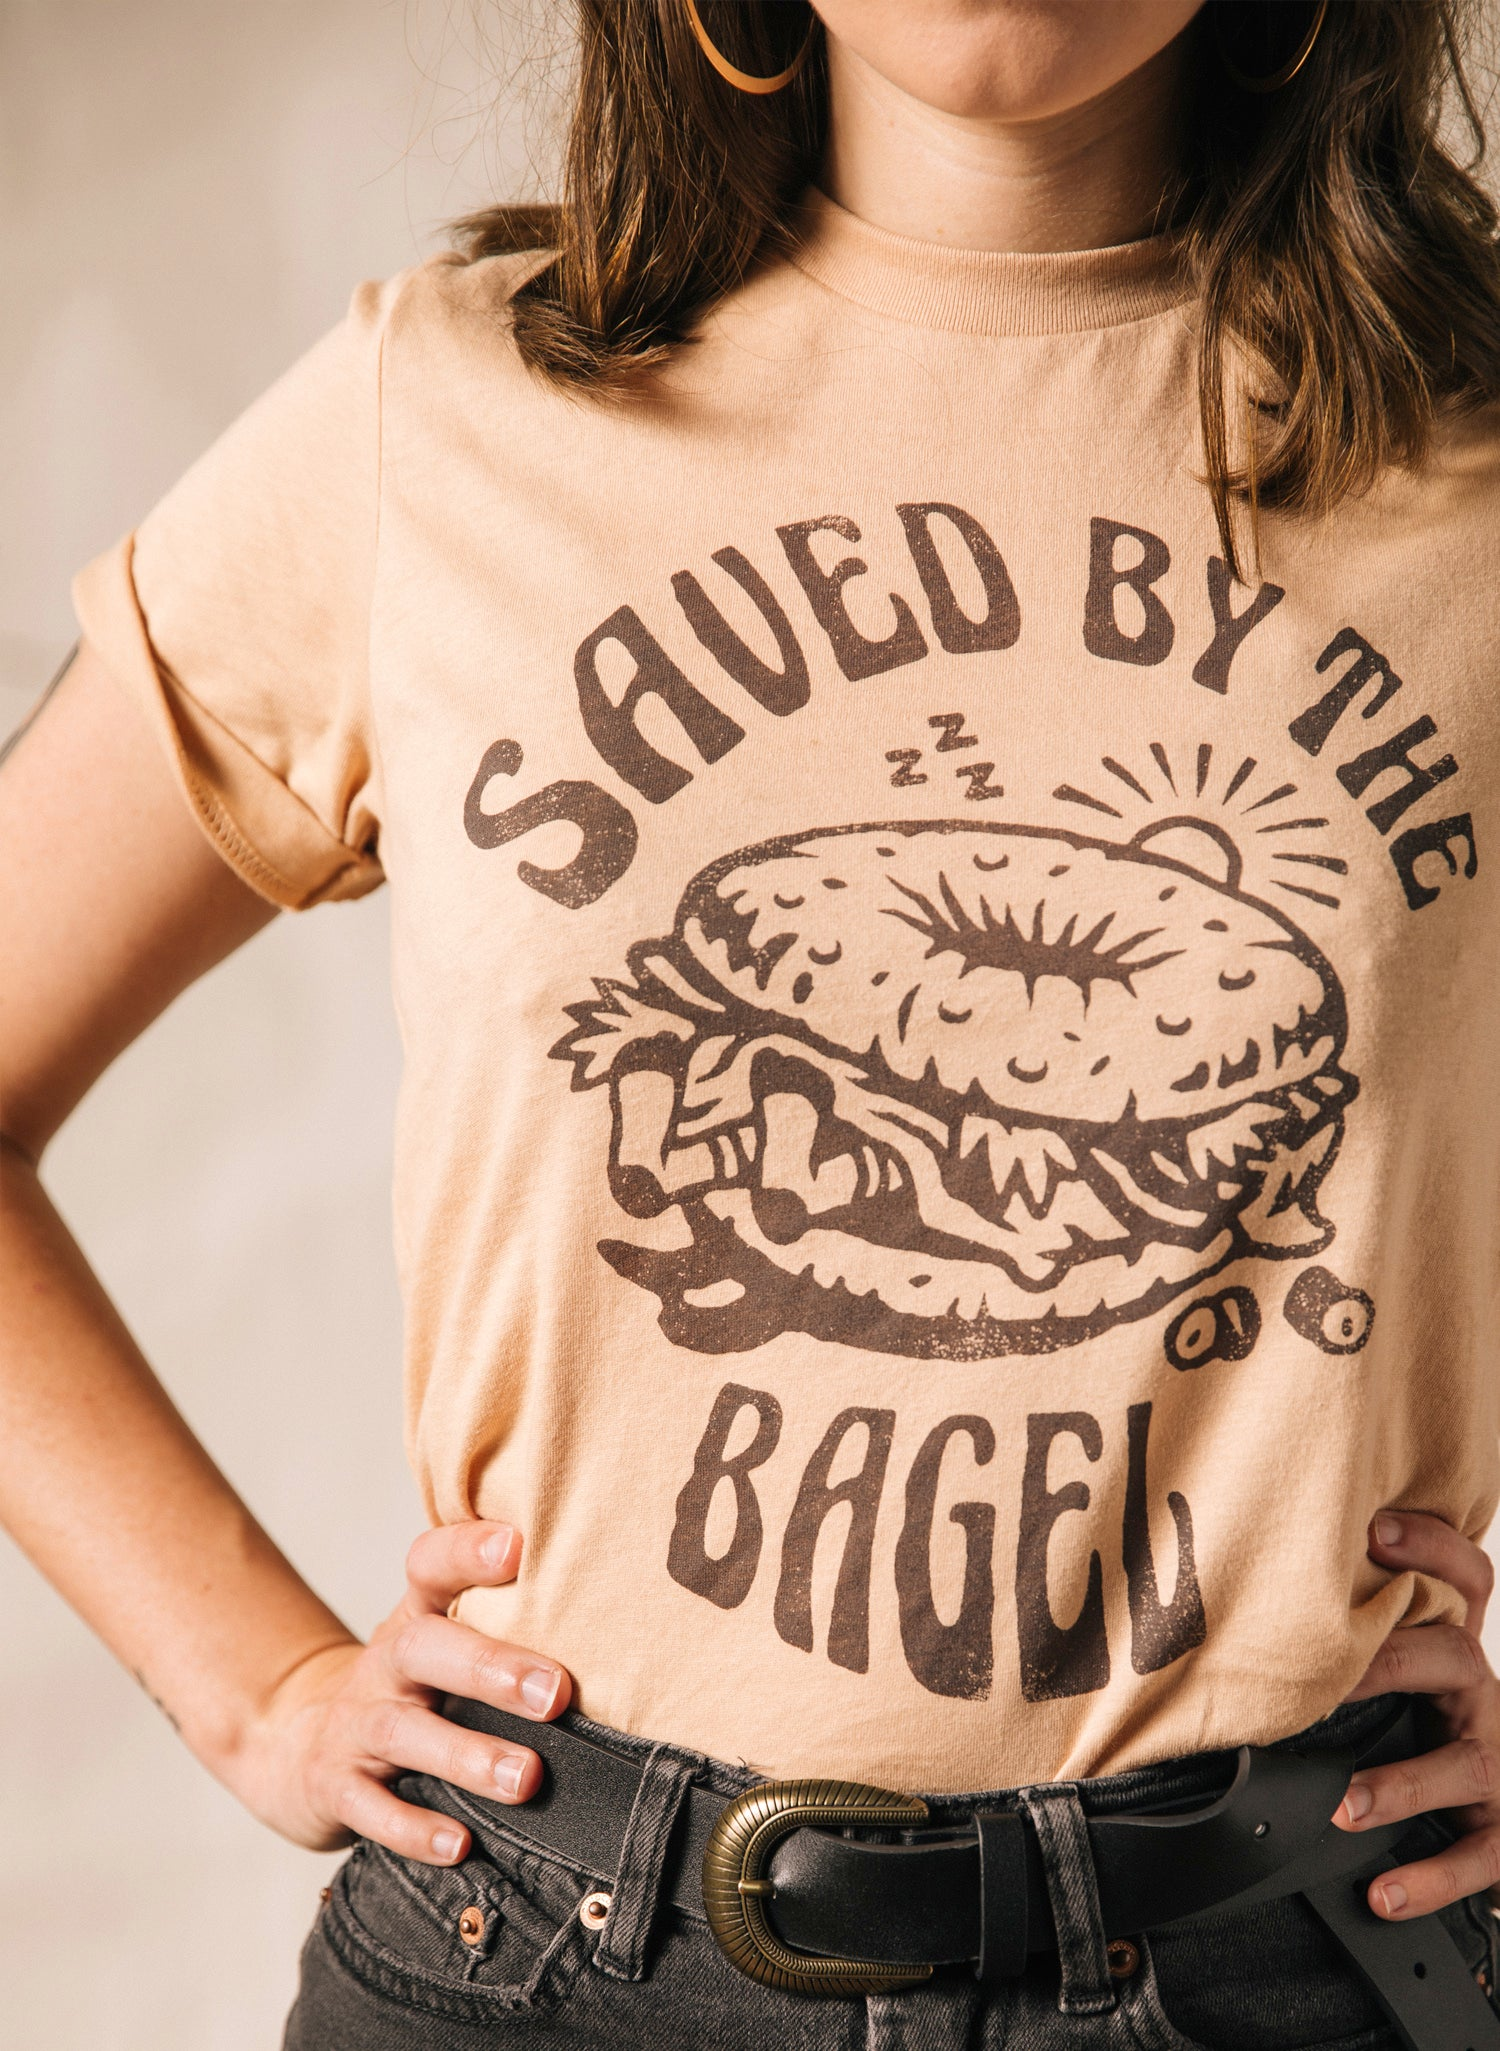 Pyknic Saved By the Bagel NYC Deli Bagels and Lox Hangover Hungover Foodie Food Tshirt